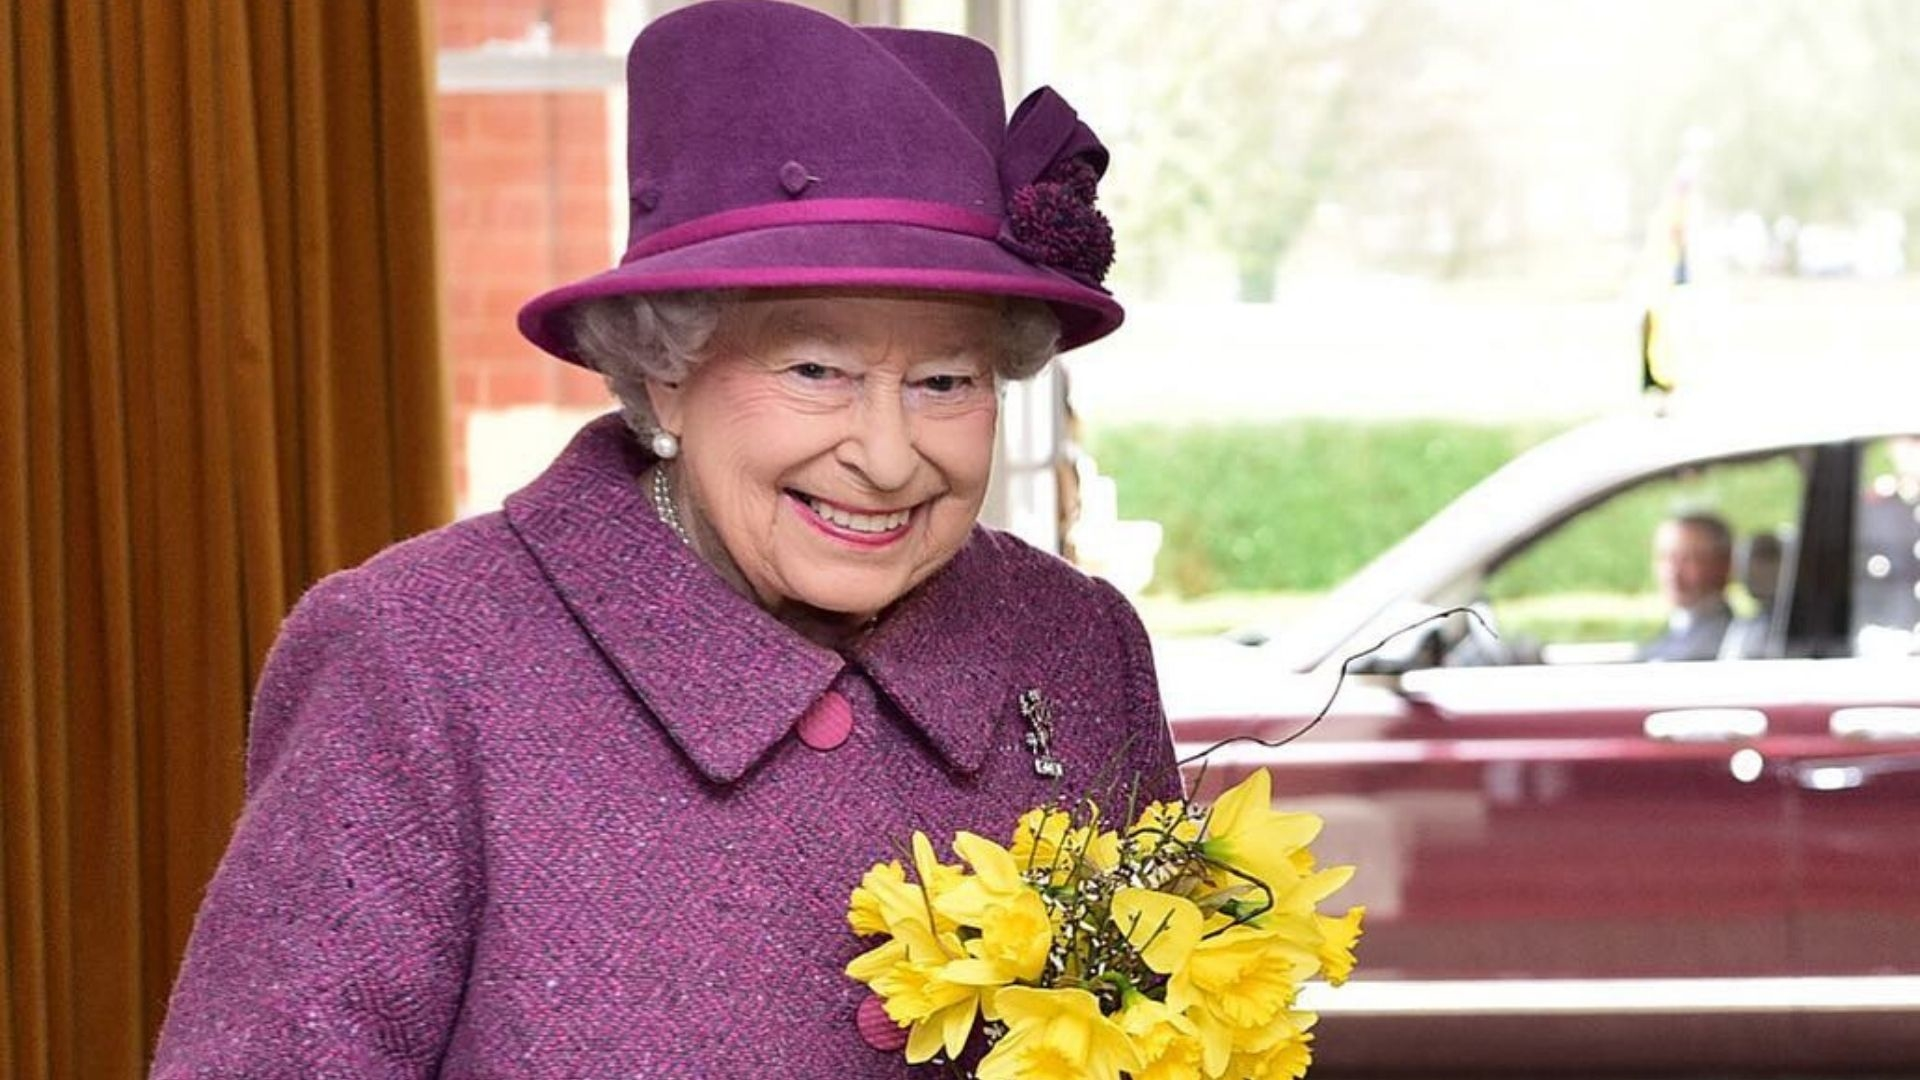 The Royal Family Responds To Rumours Surrounding Queen Elizabeth's Retirement